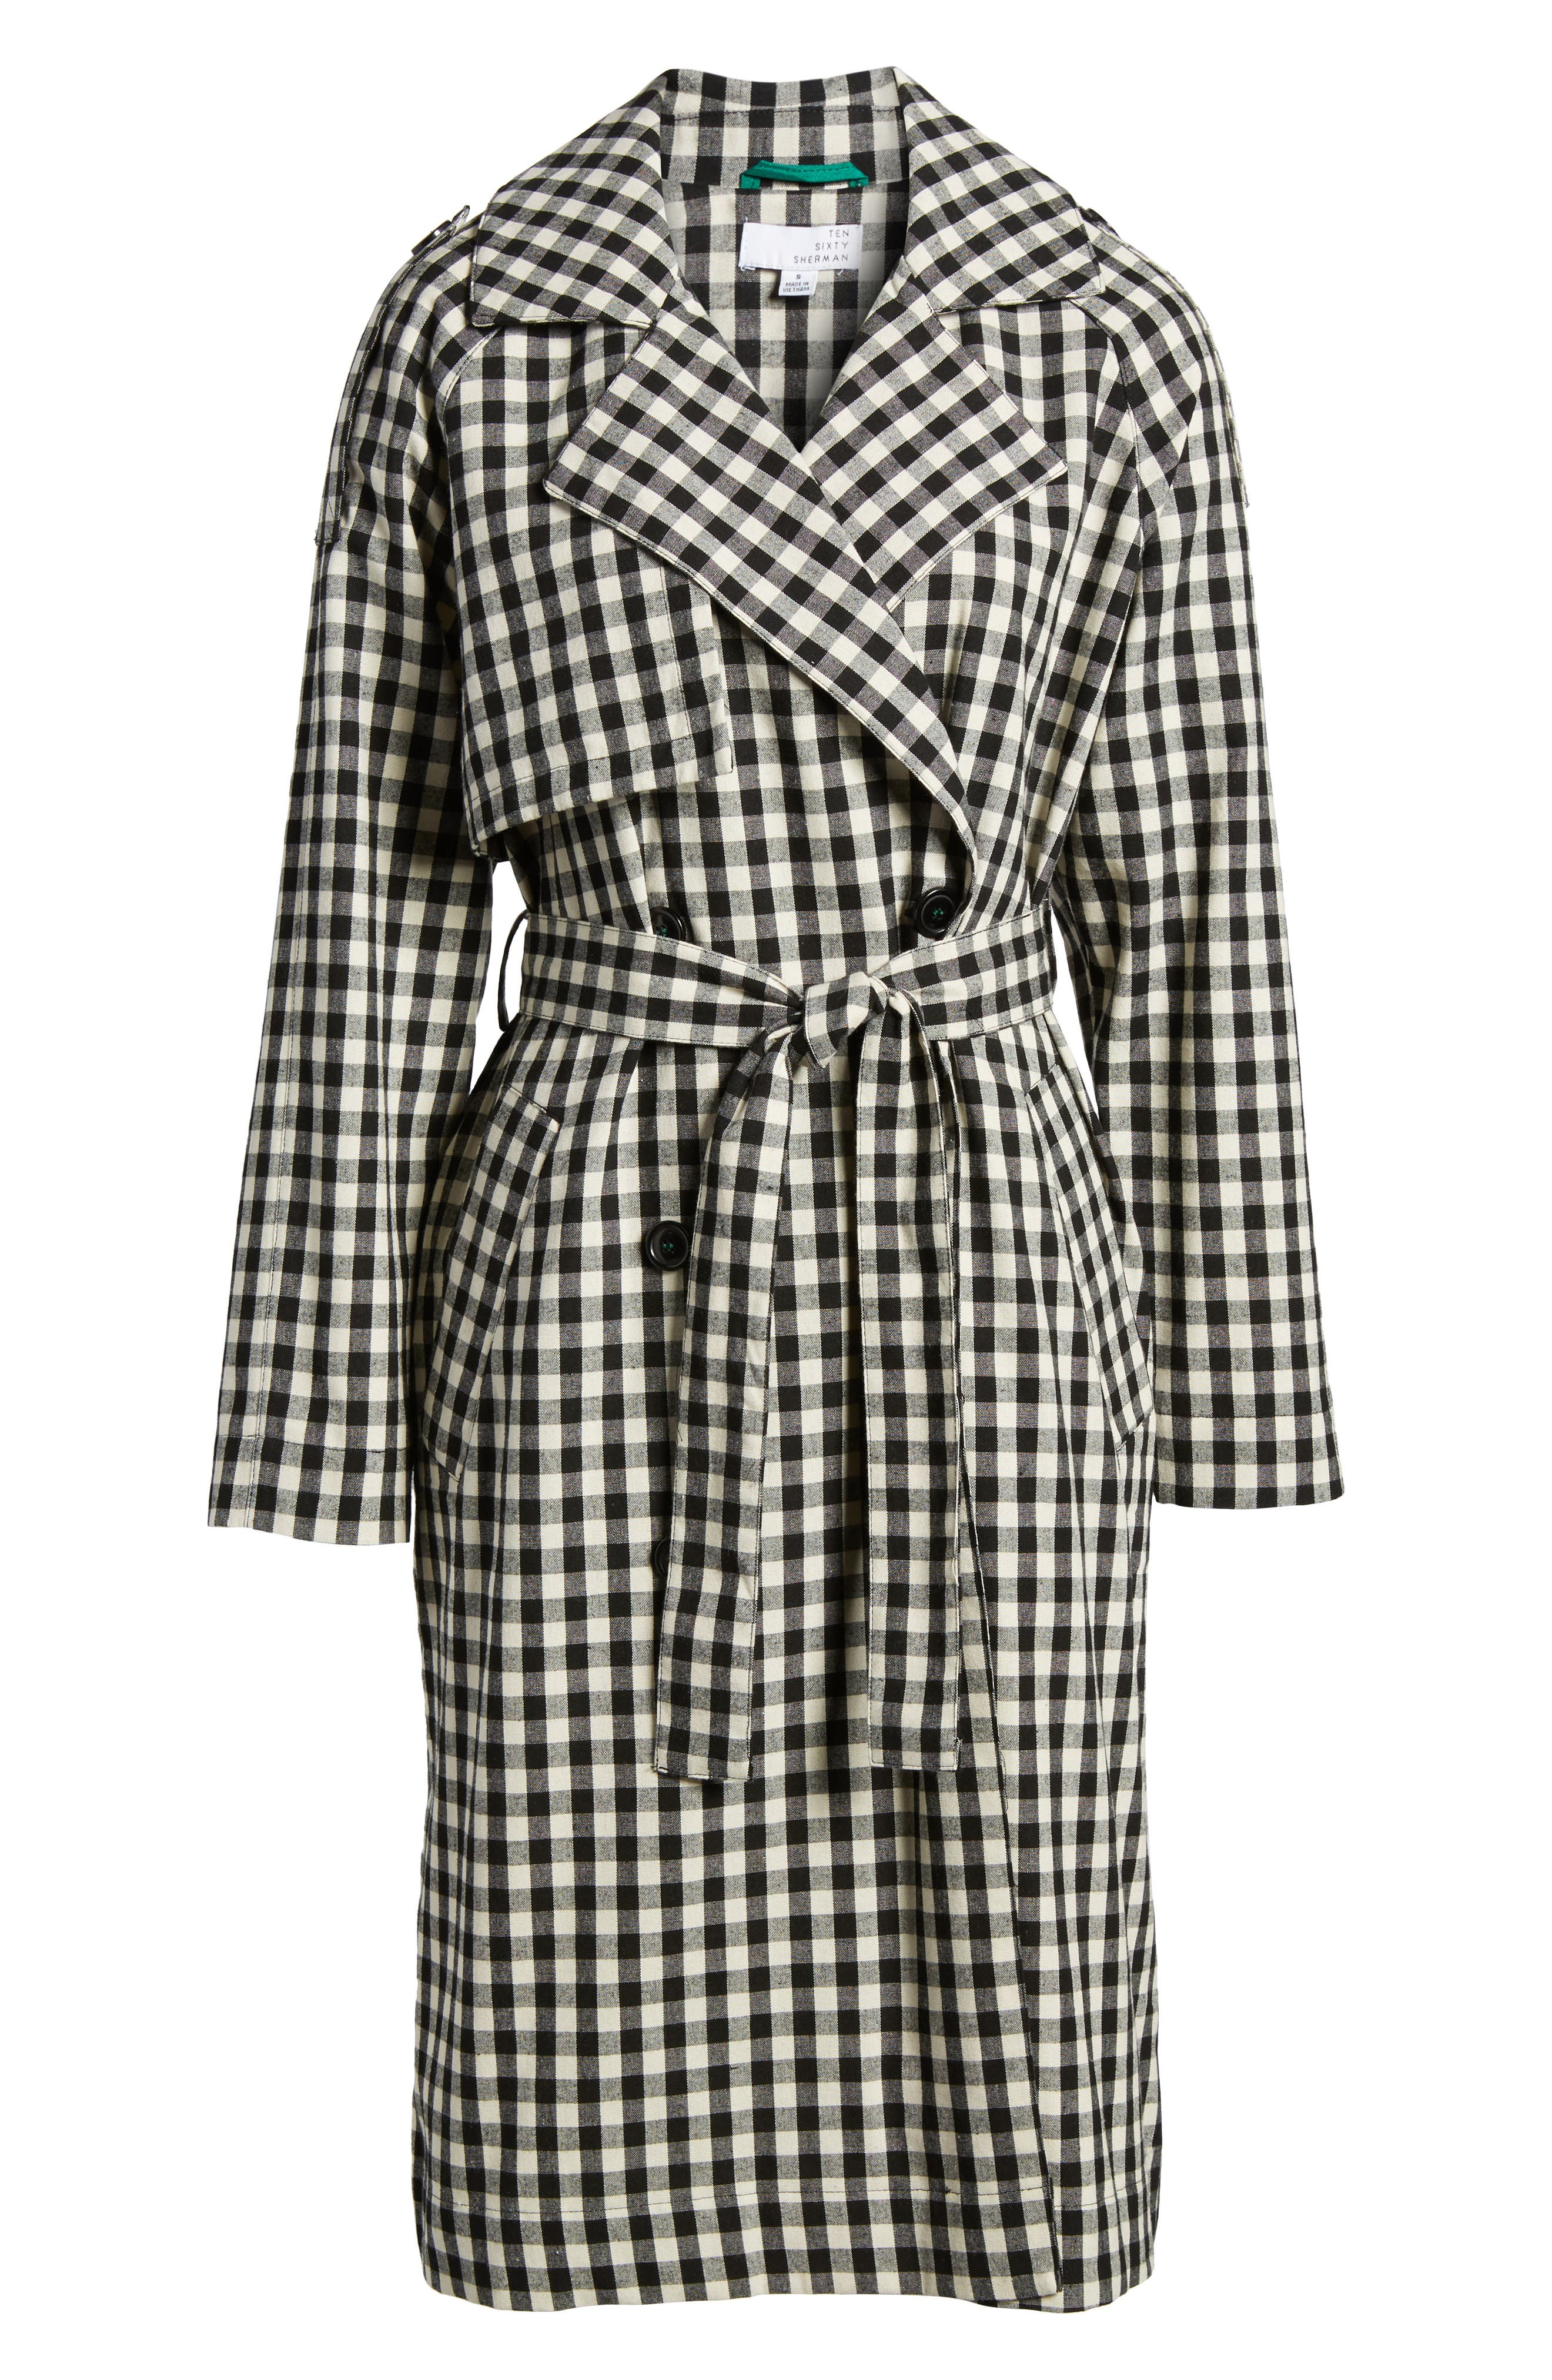 Gingham Trench Coat,                             Alternate thumbnail 6, color,                             004